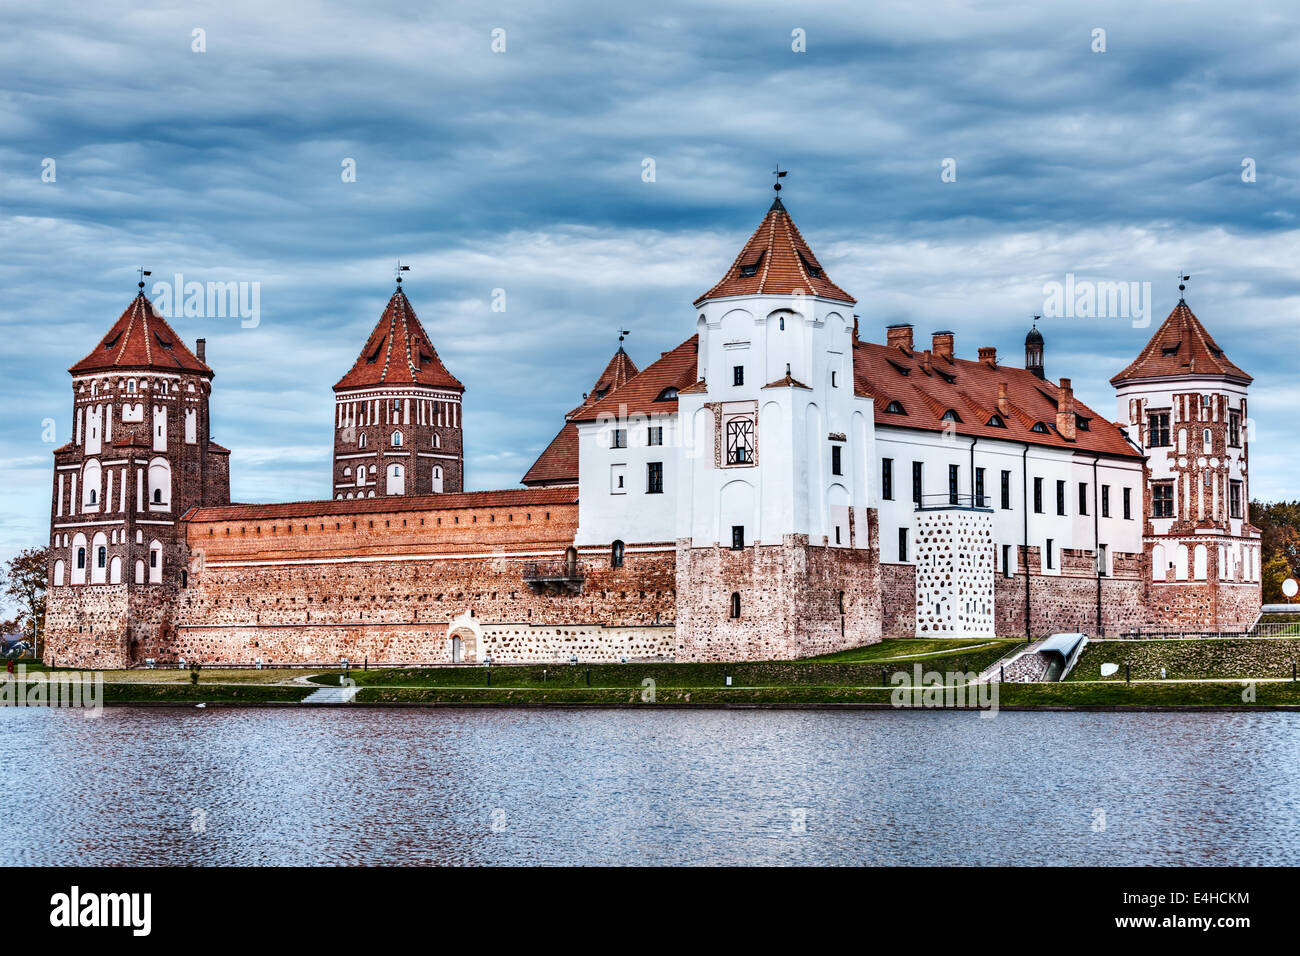 High dynamic range (hdr) image of medieval Mir castle famous landmark in town Mir, Belarus - Stock Image